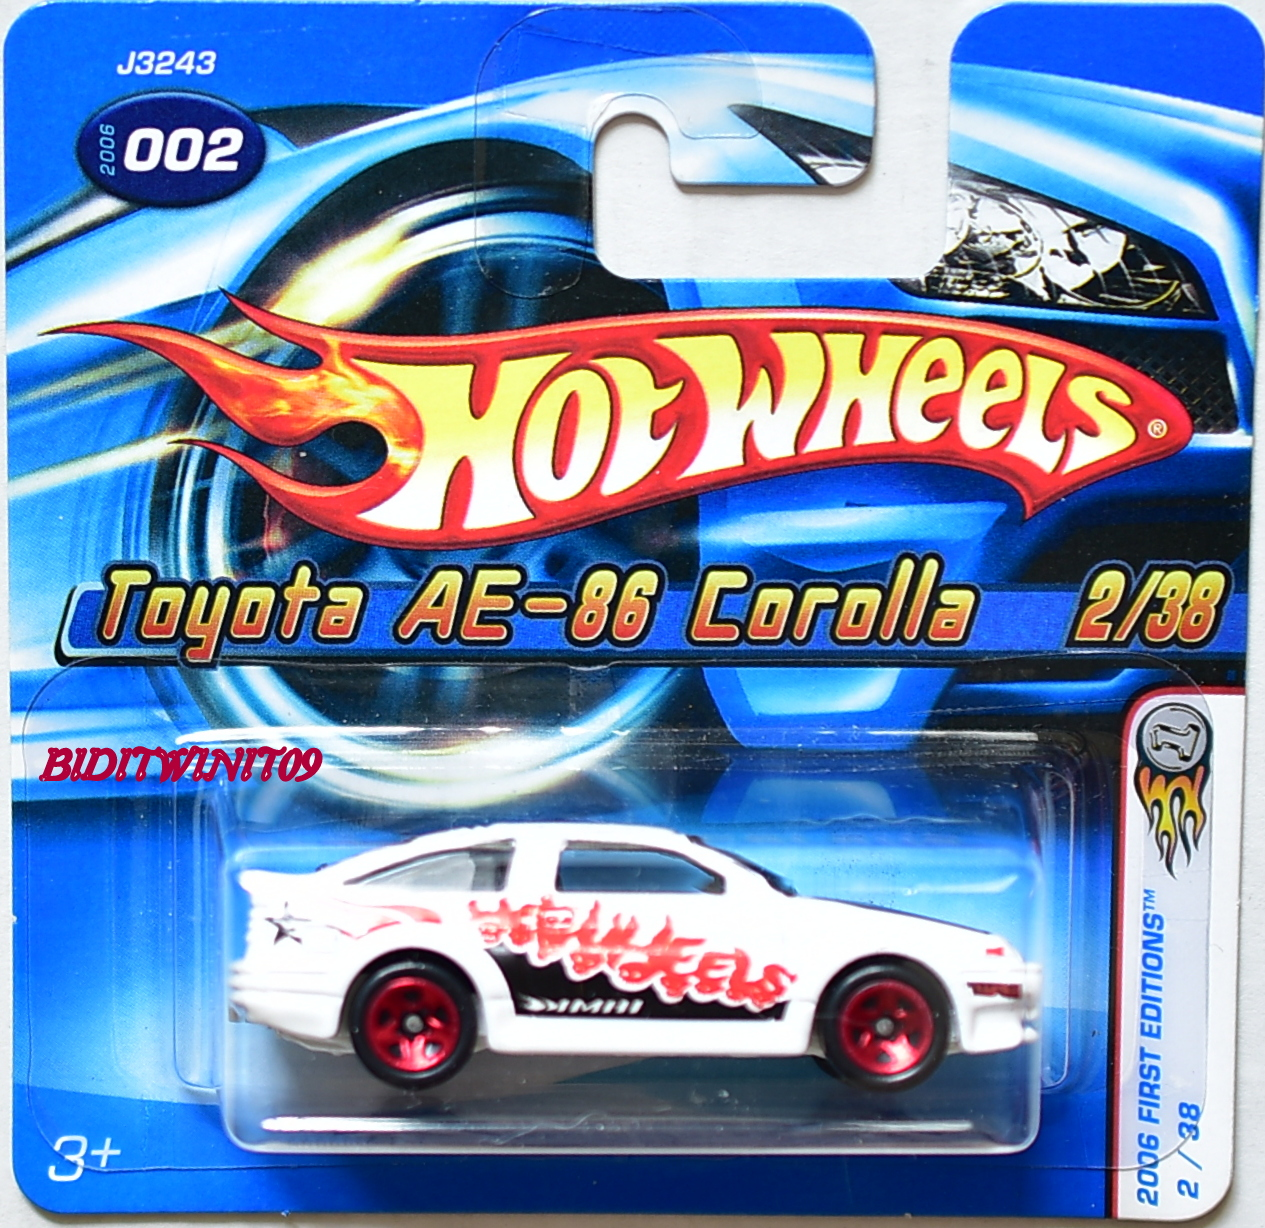 Hot Wheels 2006 First Editions Toyota Ae 86 Corolla 2 38 White Short Hotwheels Red Card